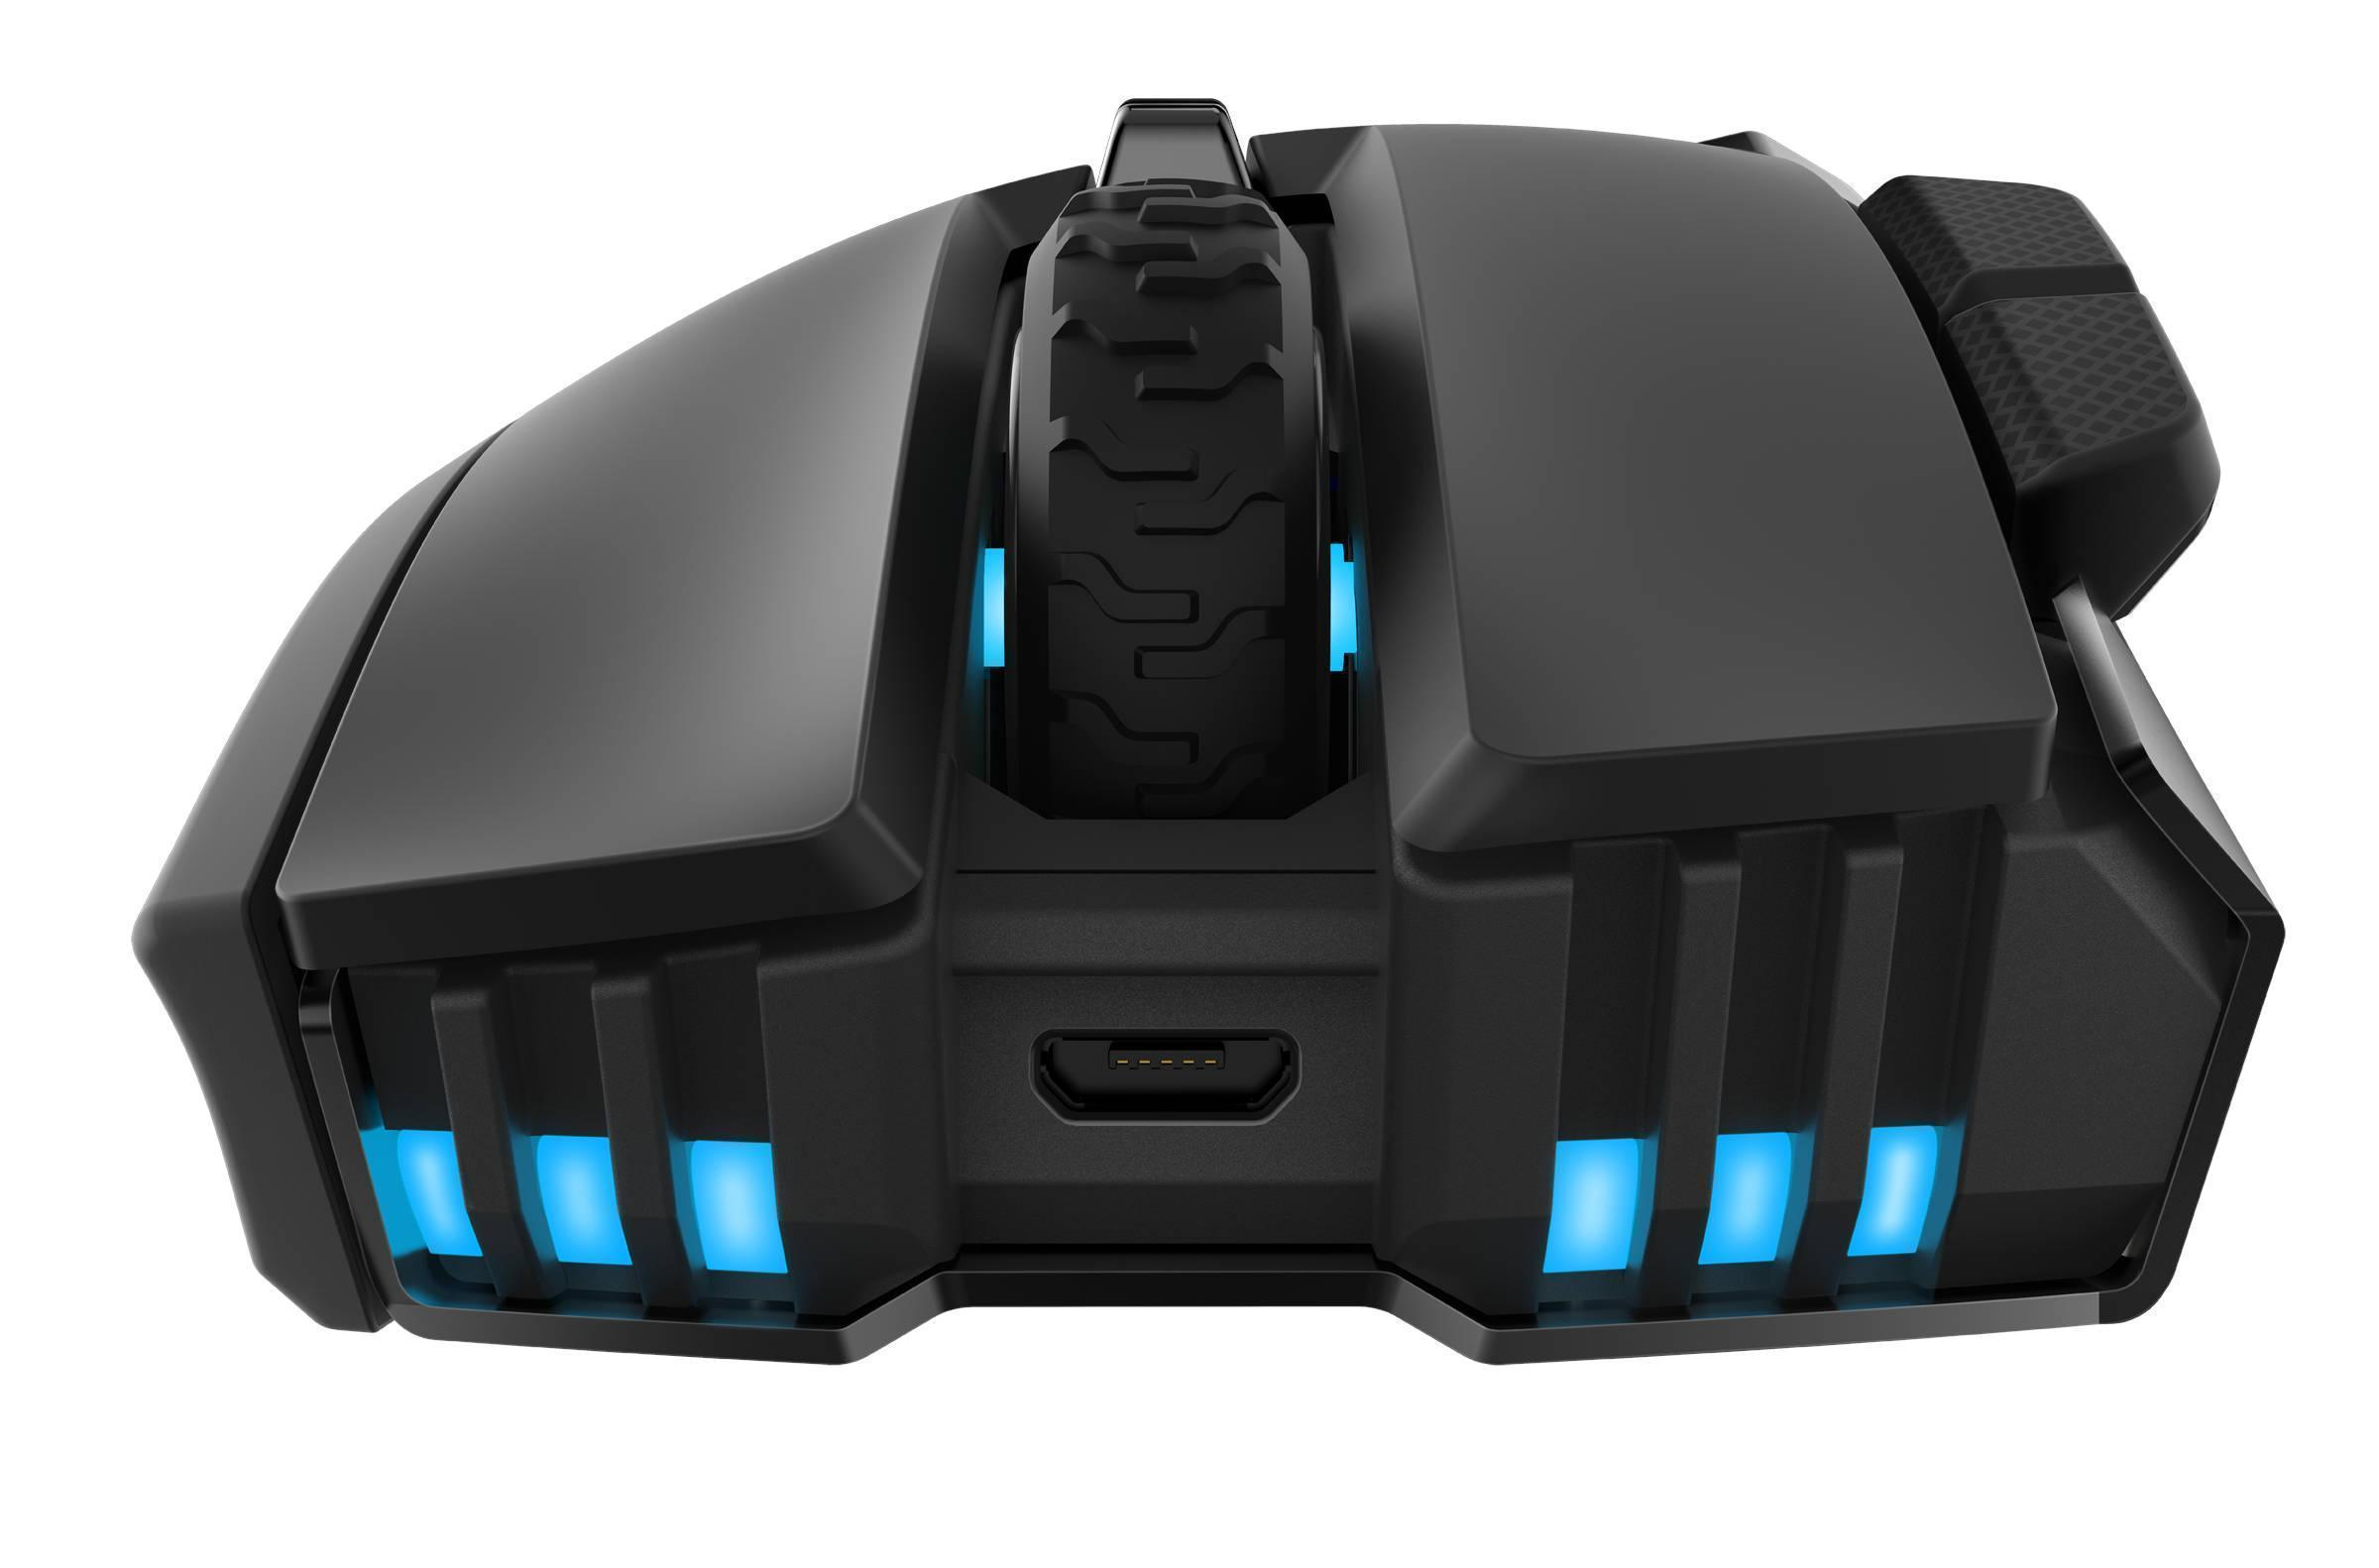 CORSAIR IRONCLAW RGB Wireless Rechargeable Gaming Mouse